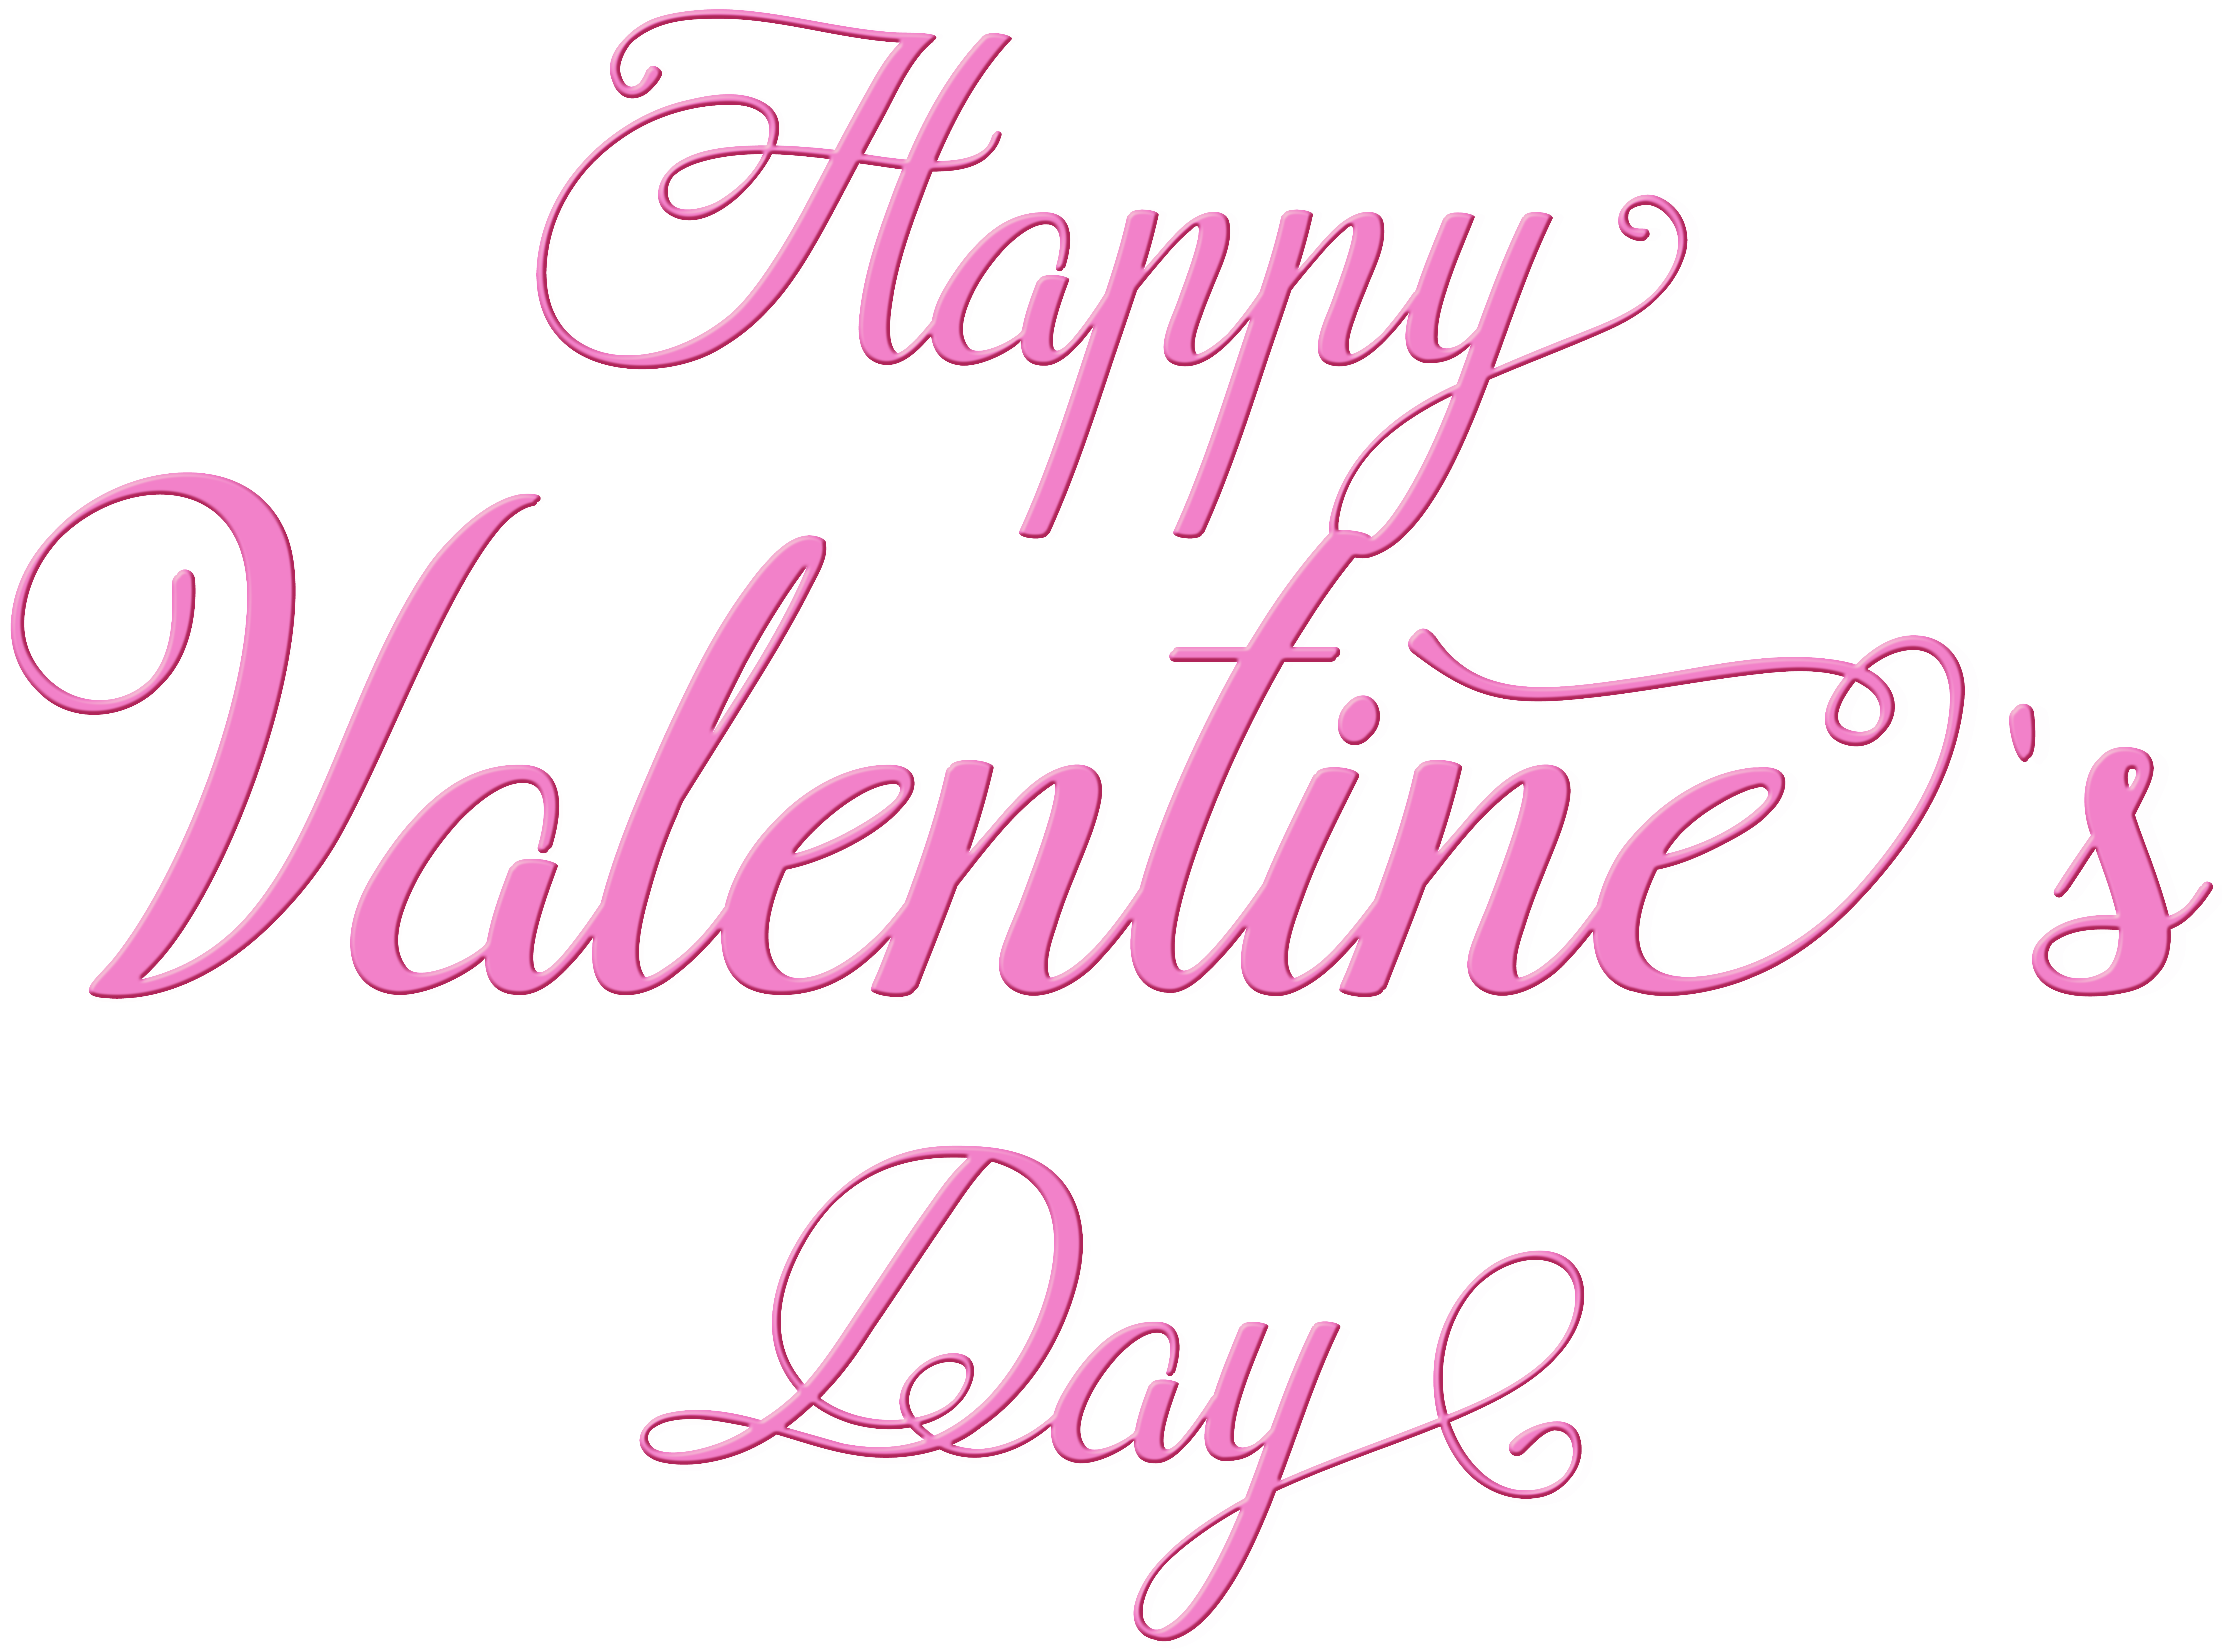 Happy Valentine\'s Day Pink Text Transparent PNG Image.